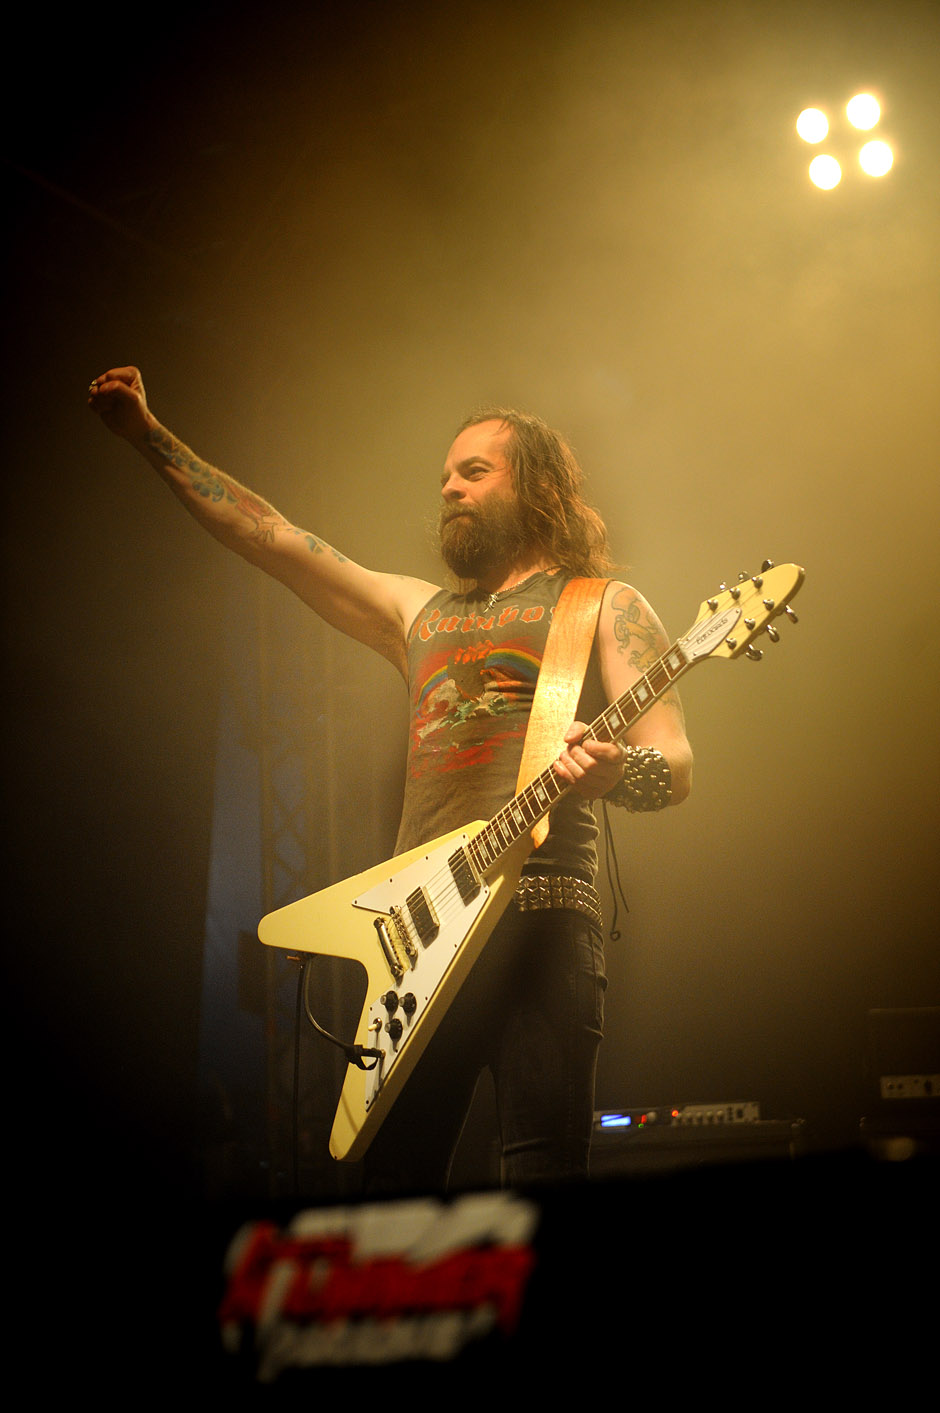 Grand Magus live, 16.11.2013, METAL HAMMER PARADISE